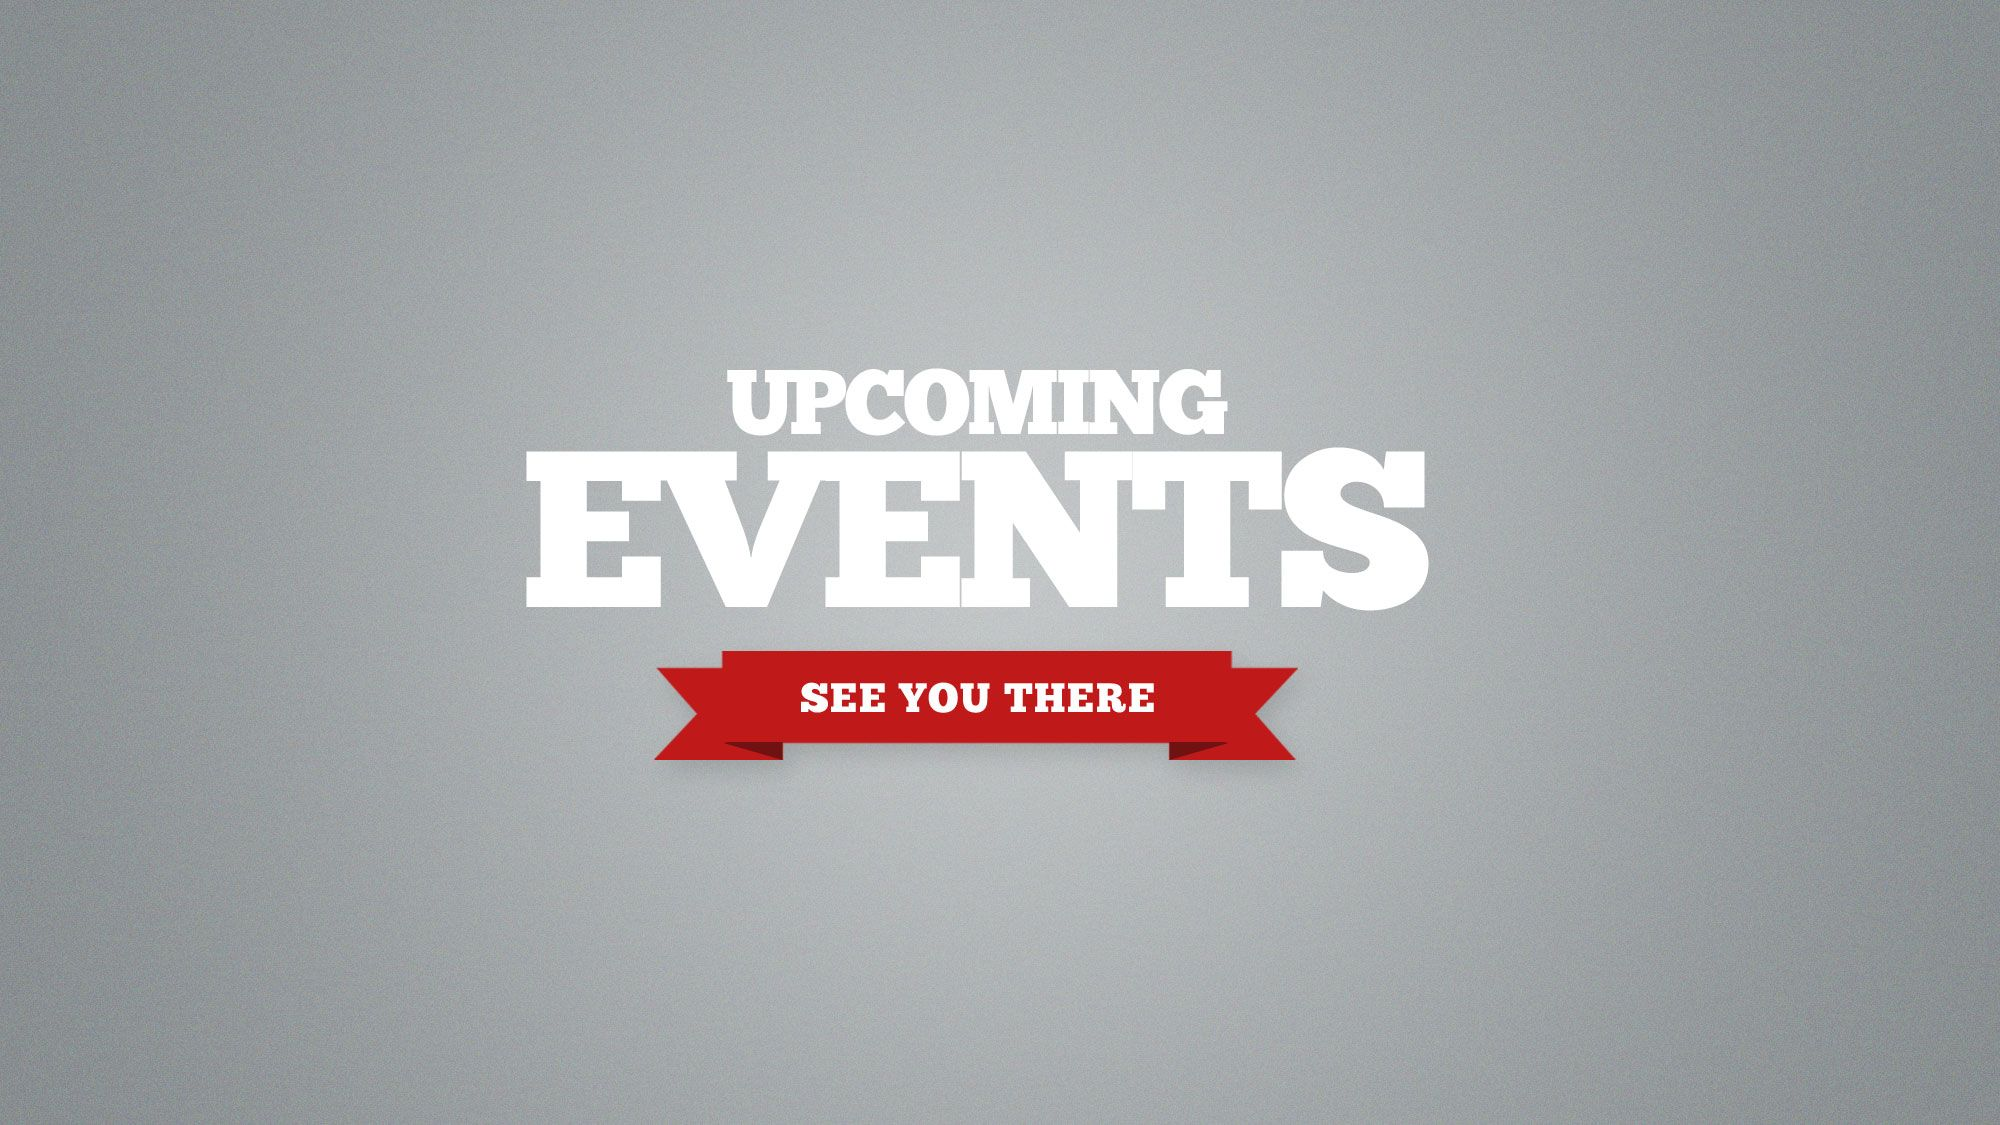 Upcoming Events Church Backgrounds Church Graphics Upcoming Events